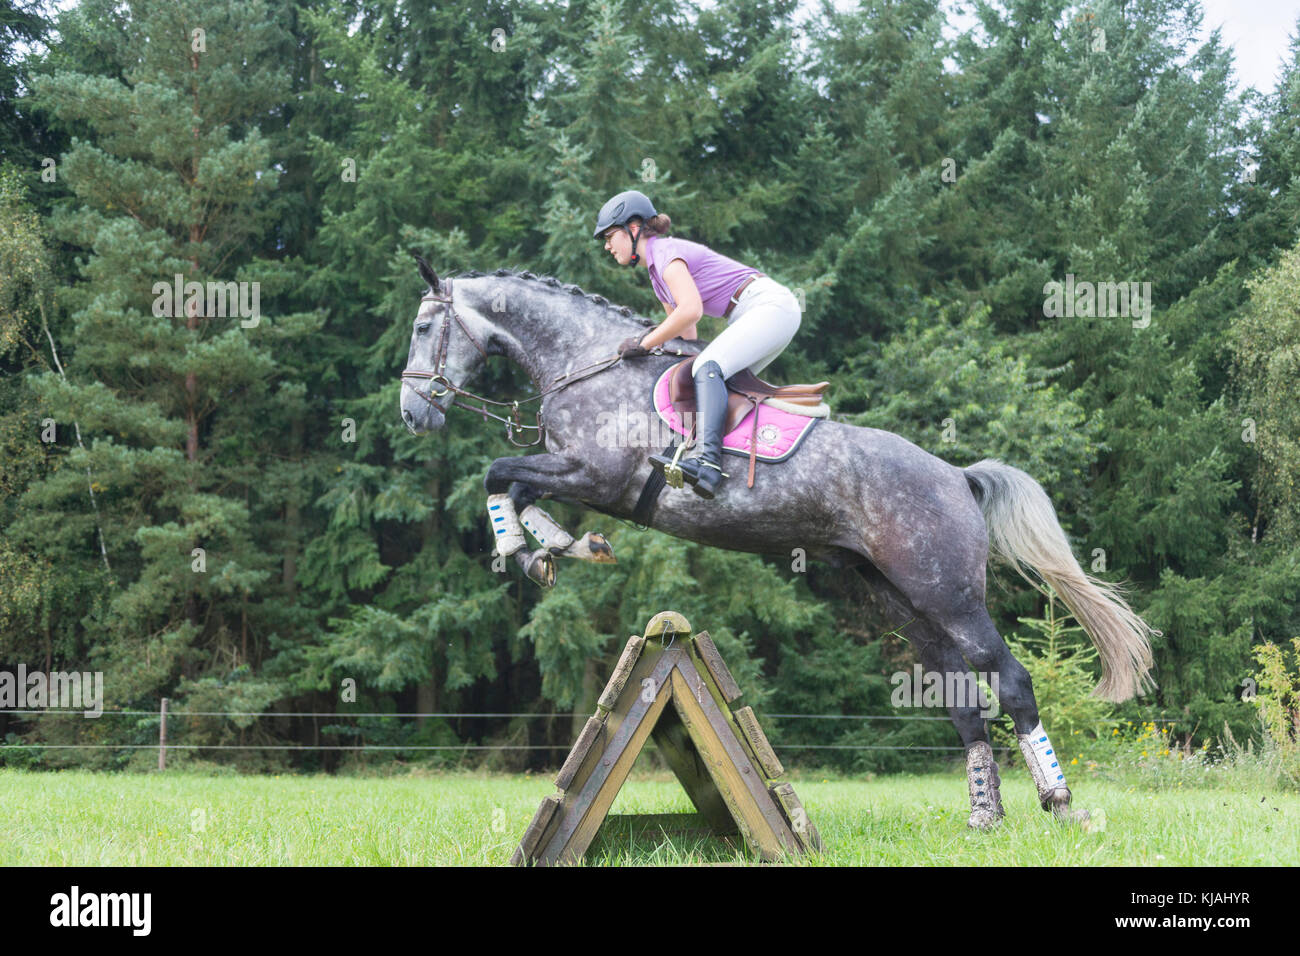 Hanoverian Horse. Rider clearing an obstacle during a cross-country ride, seen from below. Germany - Stock Image